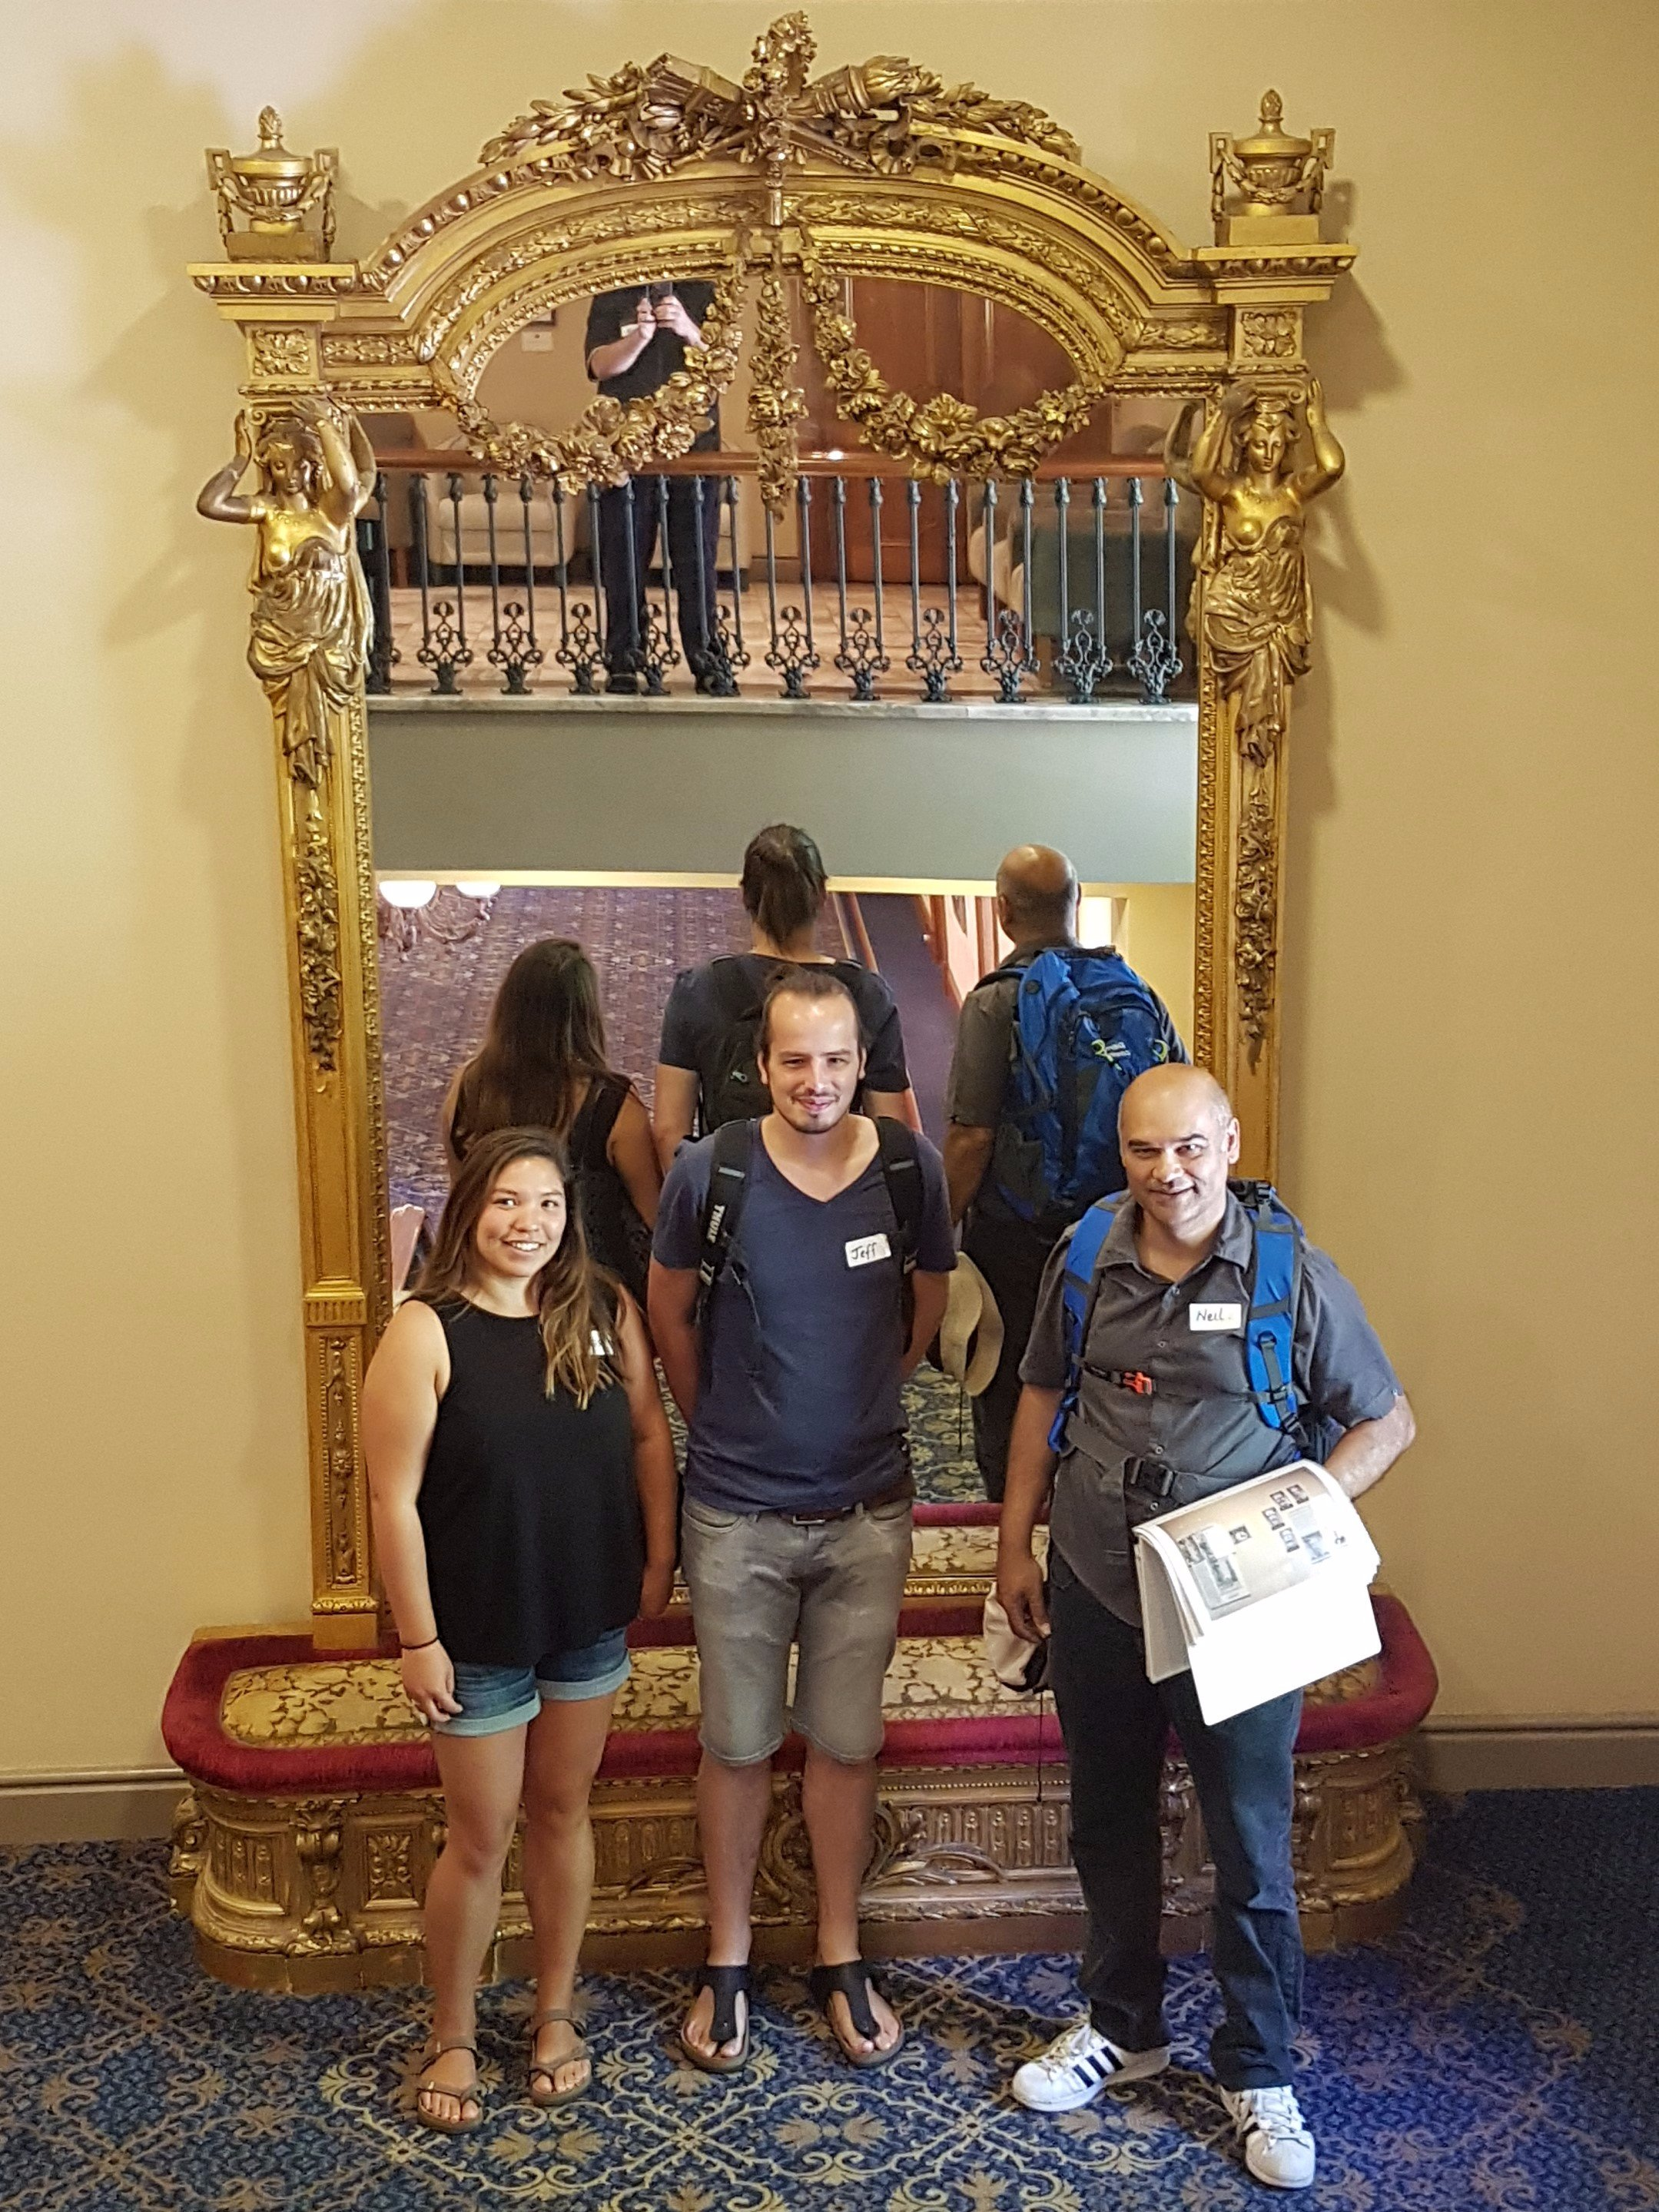 On one of the tours we visit the Town hall